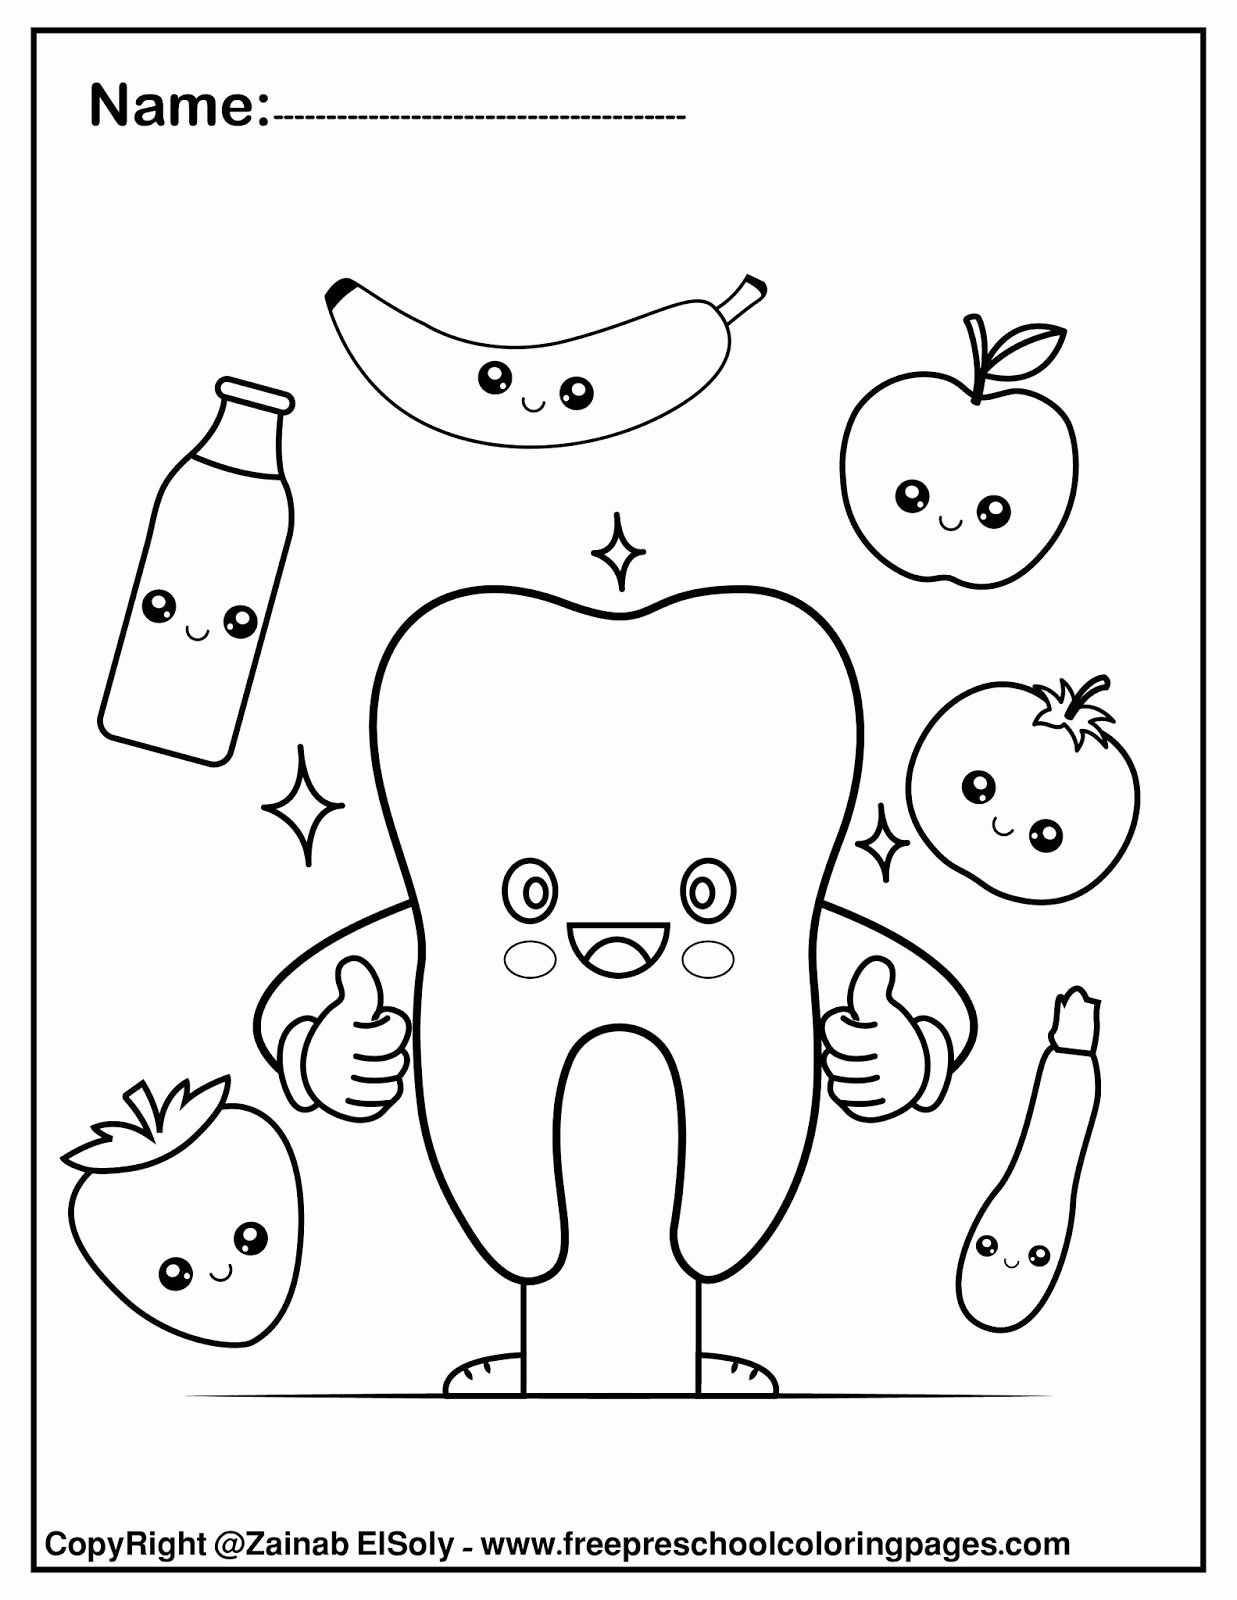 Dental Worksheets for Preschoolers Inspirational Set Free Dental Care Coloring for Kids Hygiene Worksheets